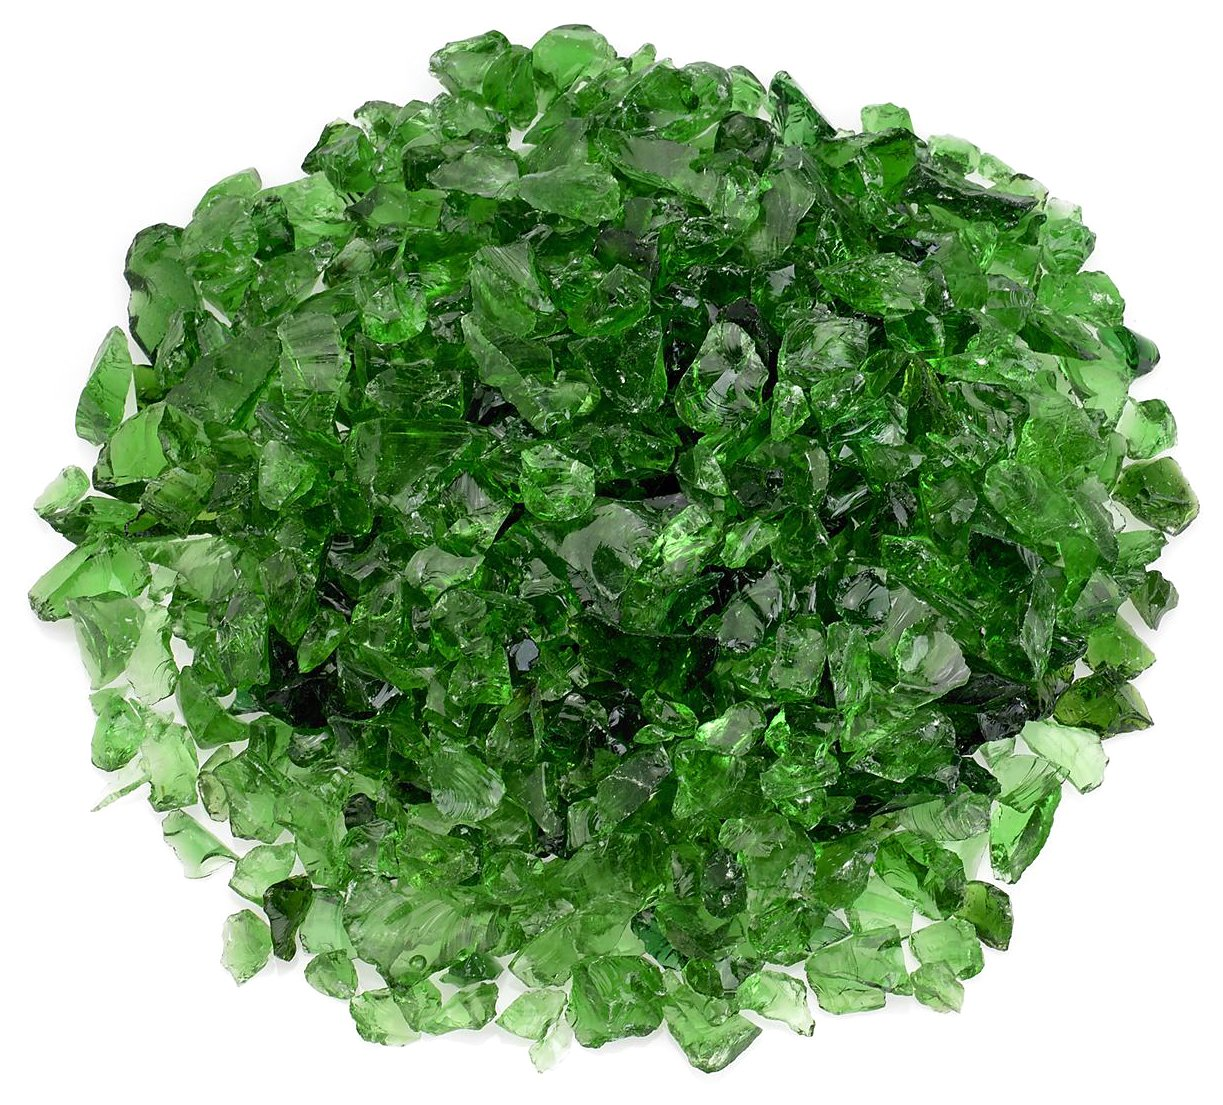 American Fireglass Light Green Recycled Fire Pit Glass - Small (12-18Mm), 55 lb. Bag by American Fireglass